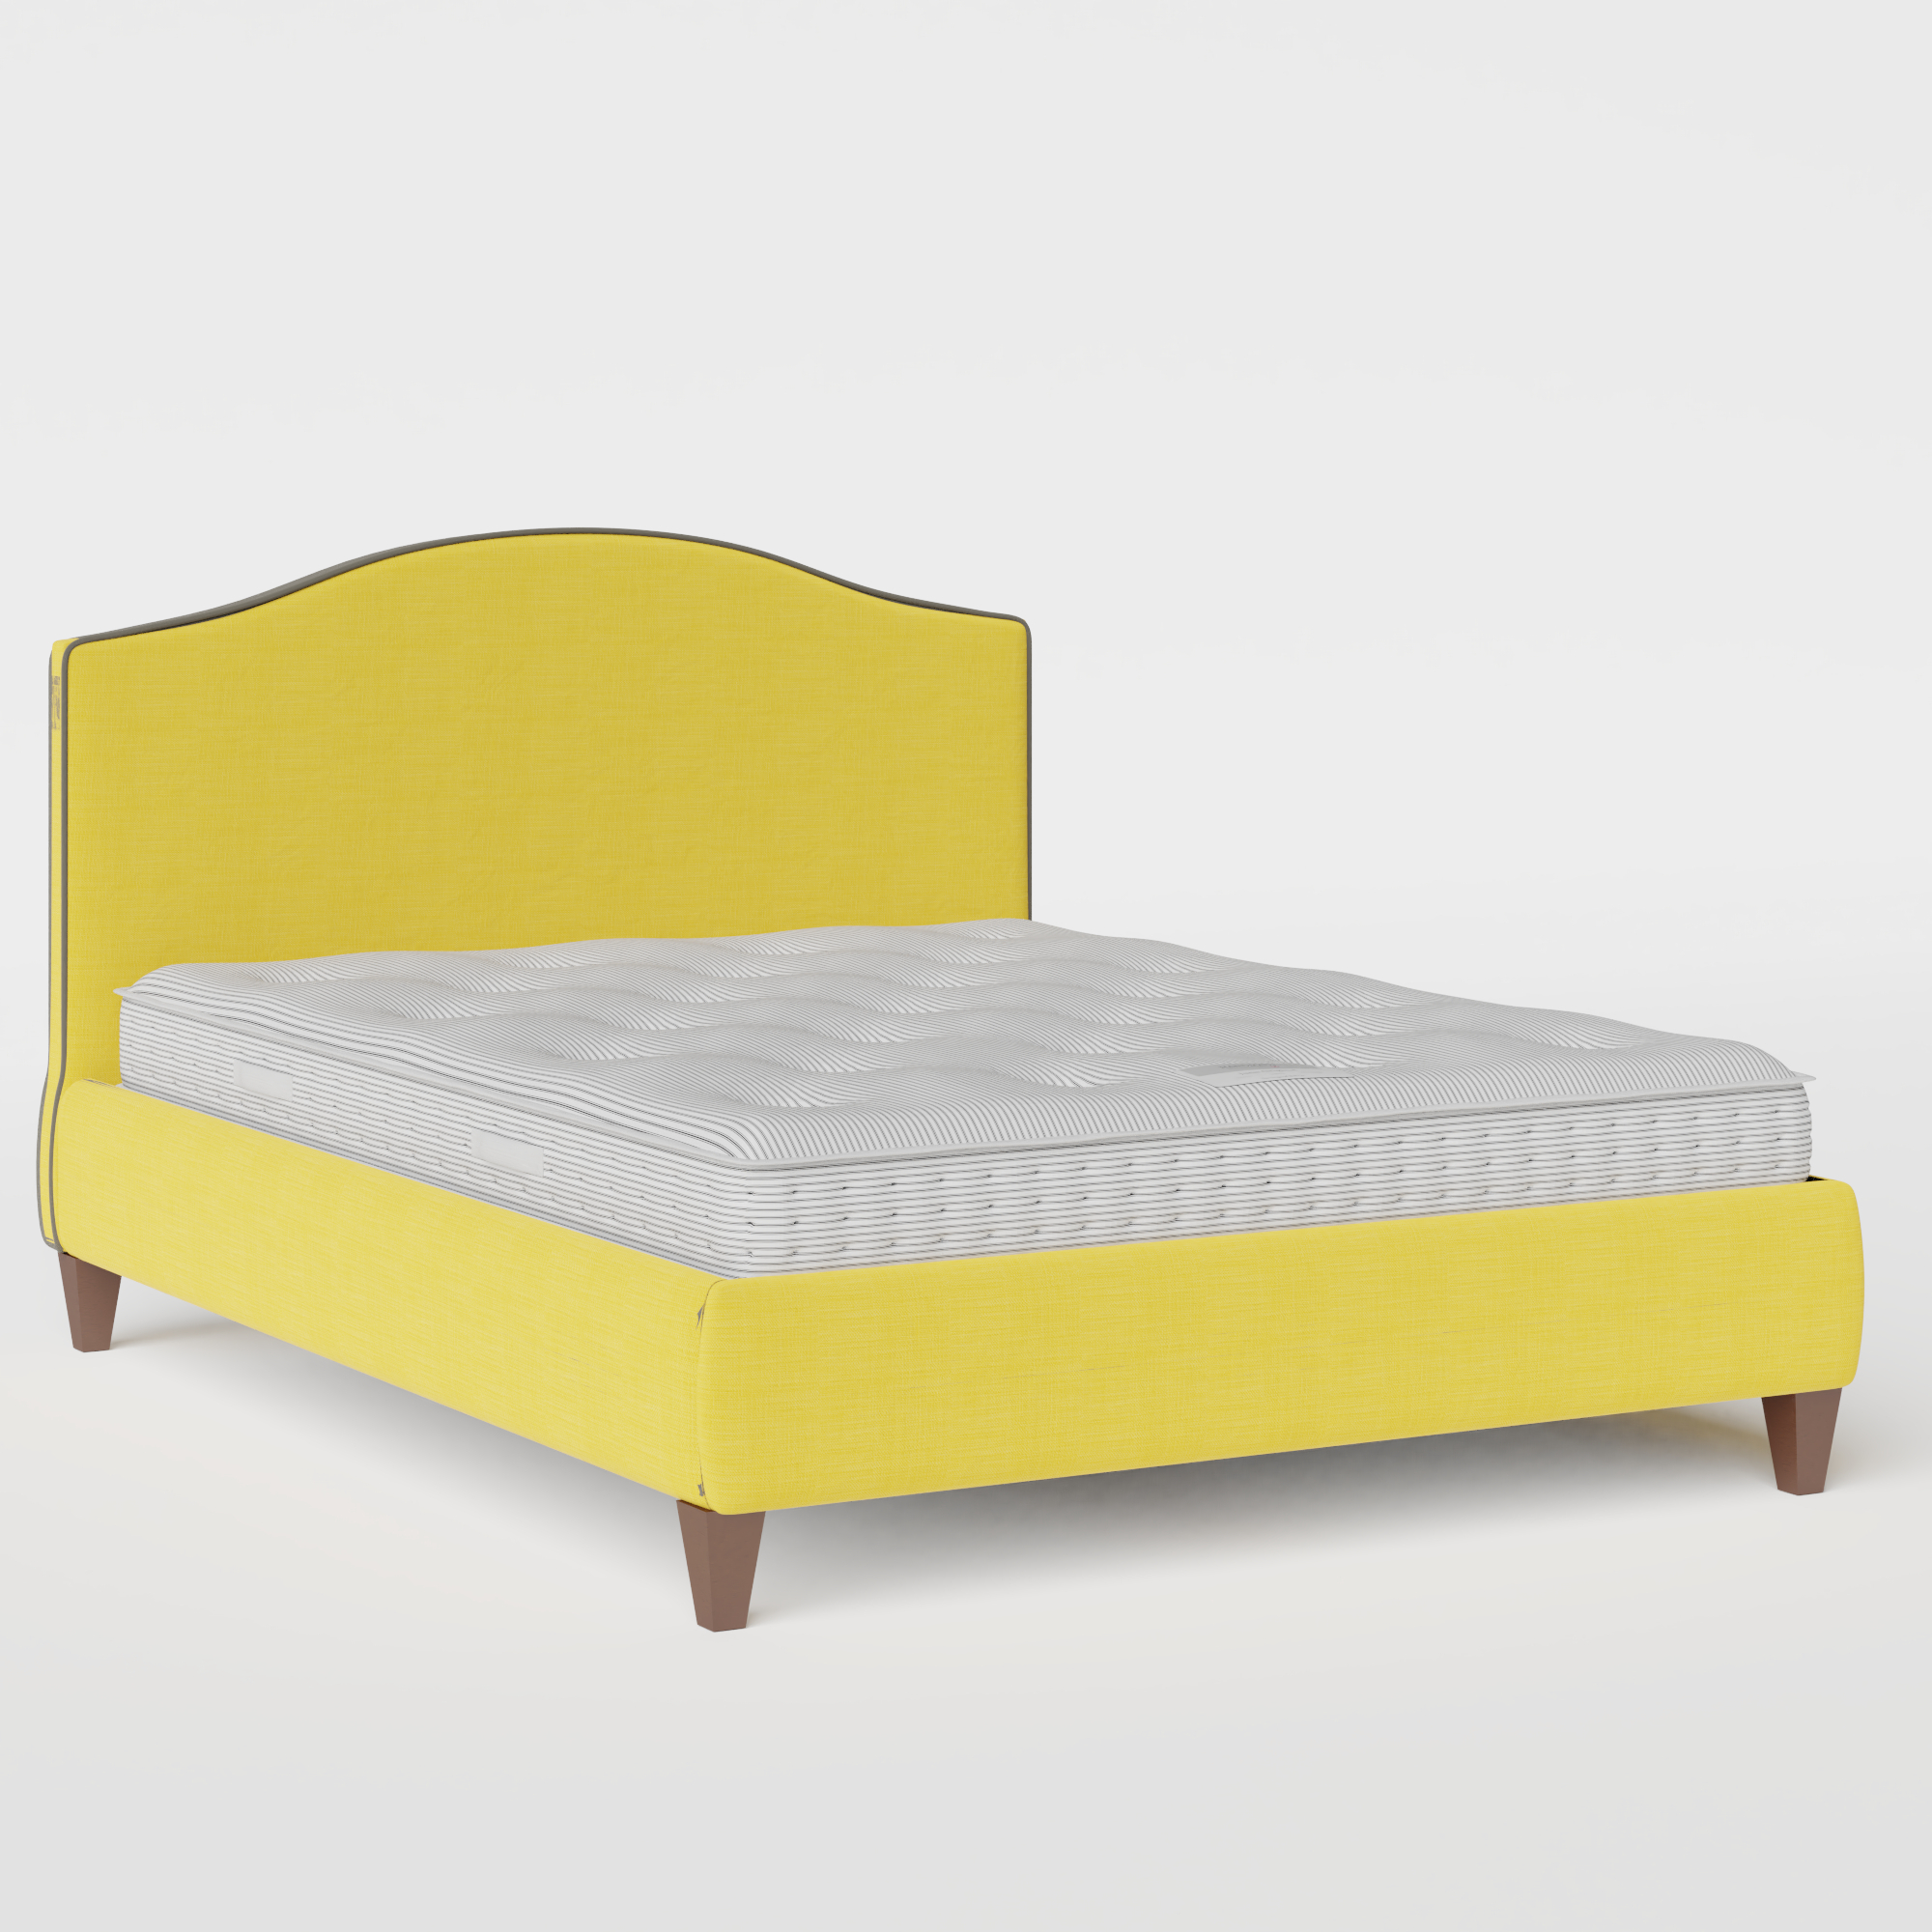 Daniella with Piping upholstered bed in sunflower fabric